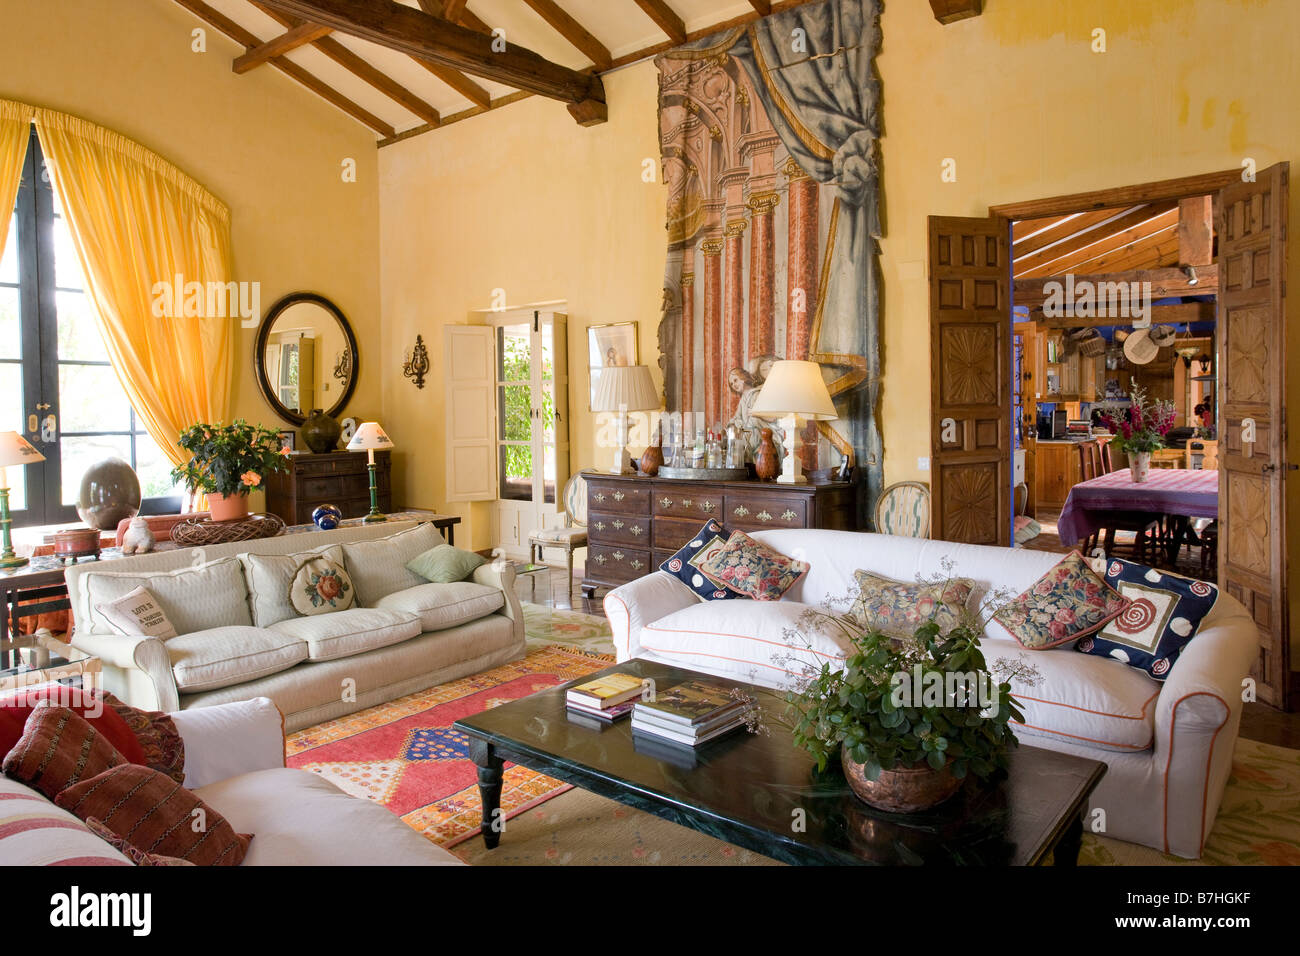 Living Room In Spanish Painting Large White Sofas In Yellow Spanish Living Room With Trompe L Oeil .